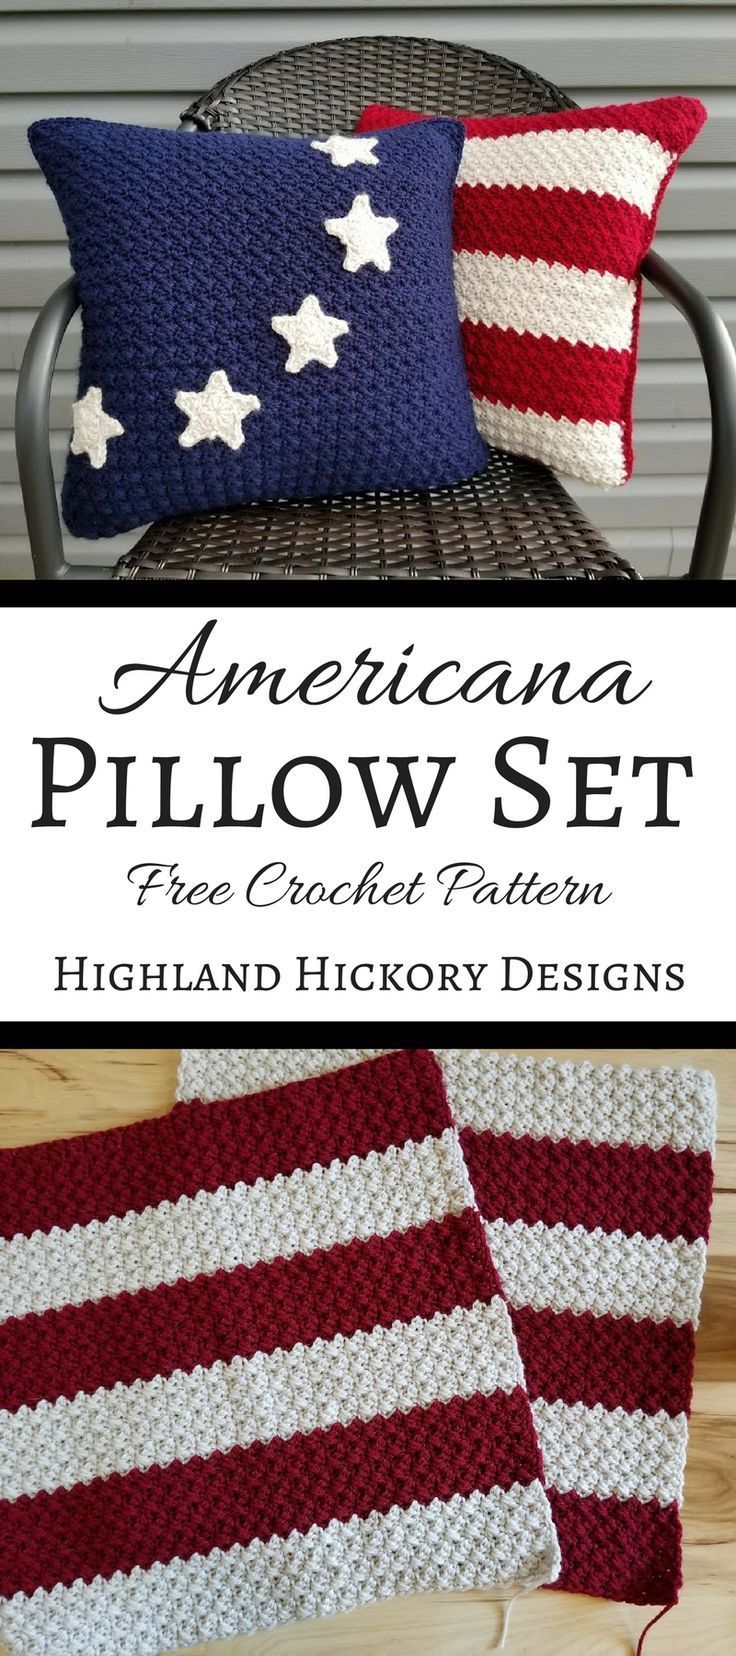 Americana Pillows - Highland Hickory Designs - Free Crochet Pattern #americanflag